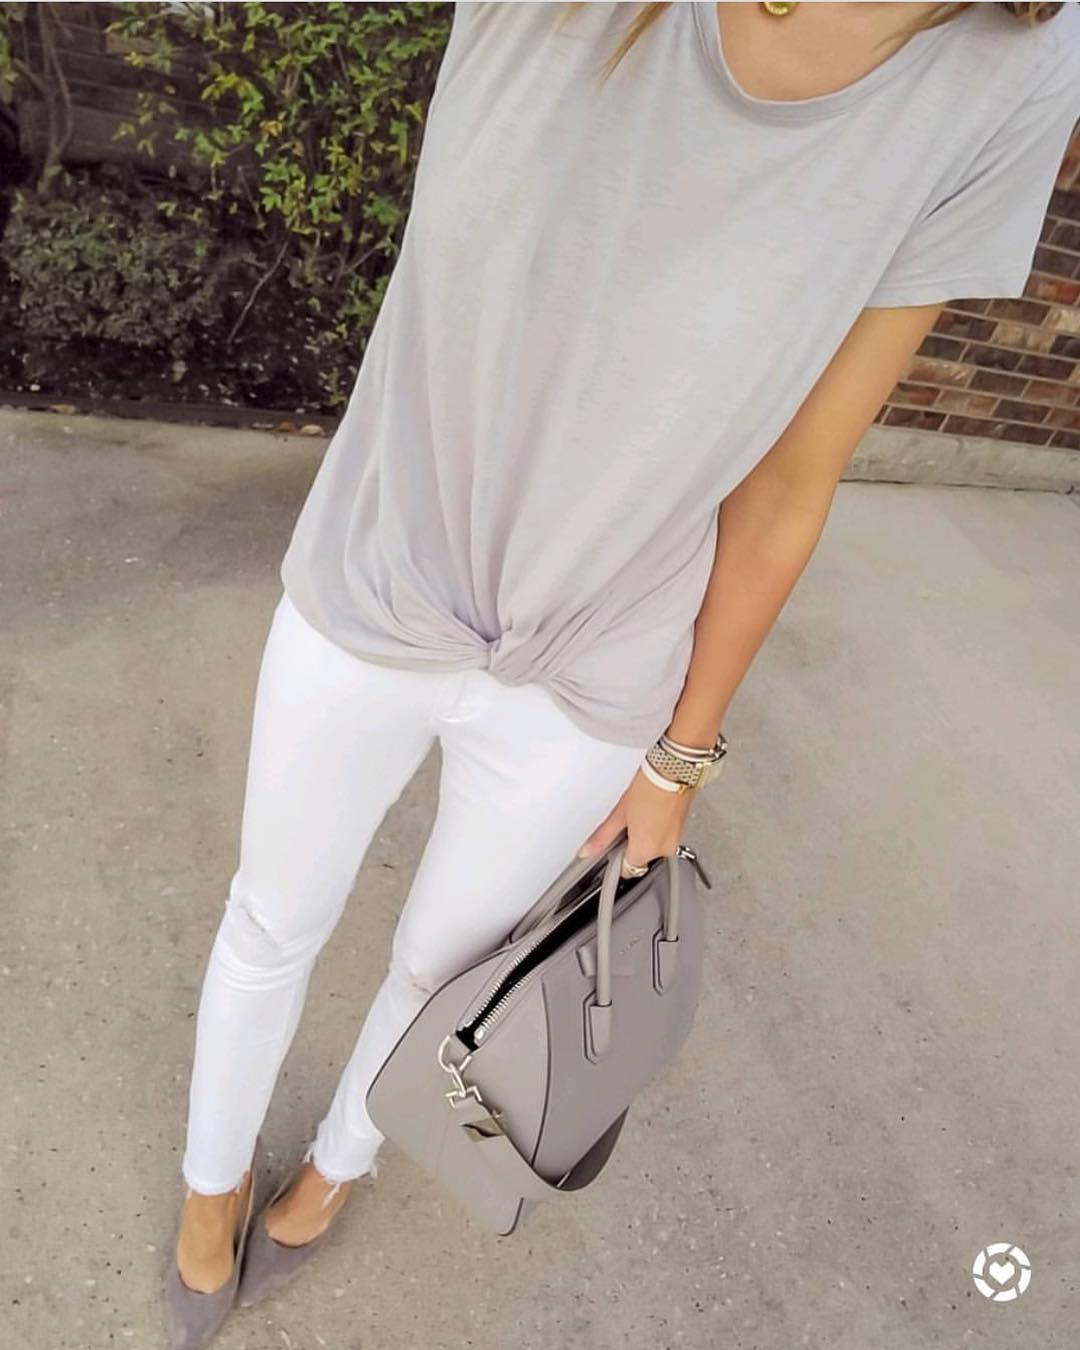 Summer Monochrome Essentials: Cream Grey Tee, White Skinny Jeans And Grey Pumps 2021